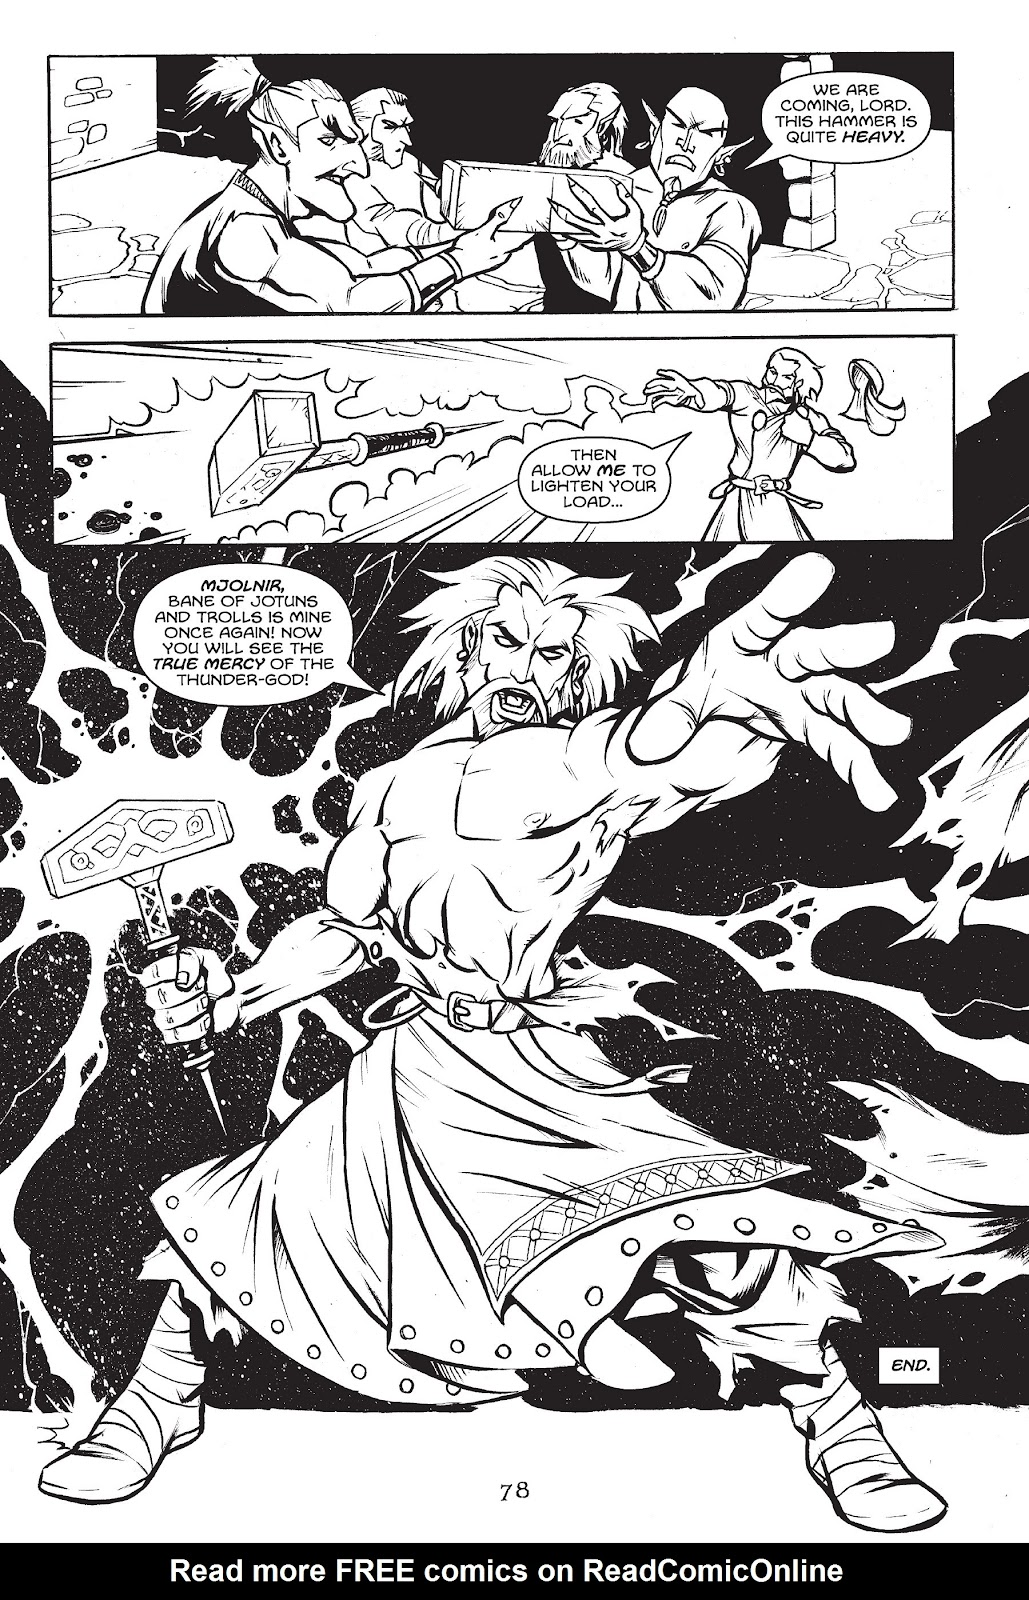 Read online Gods of Asgard comic -  Issue # TPB (Part 1) - 79